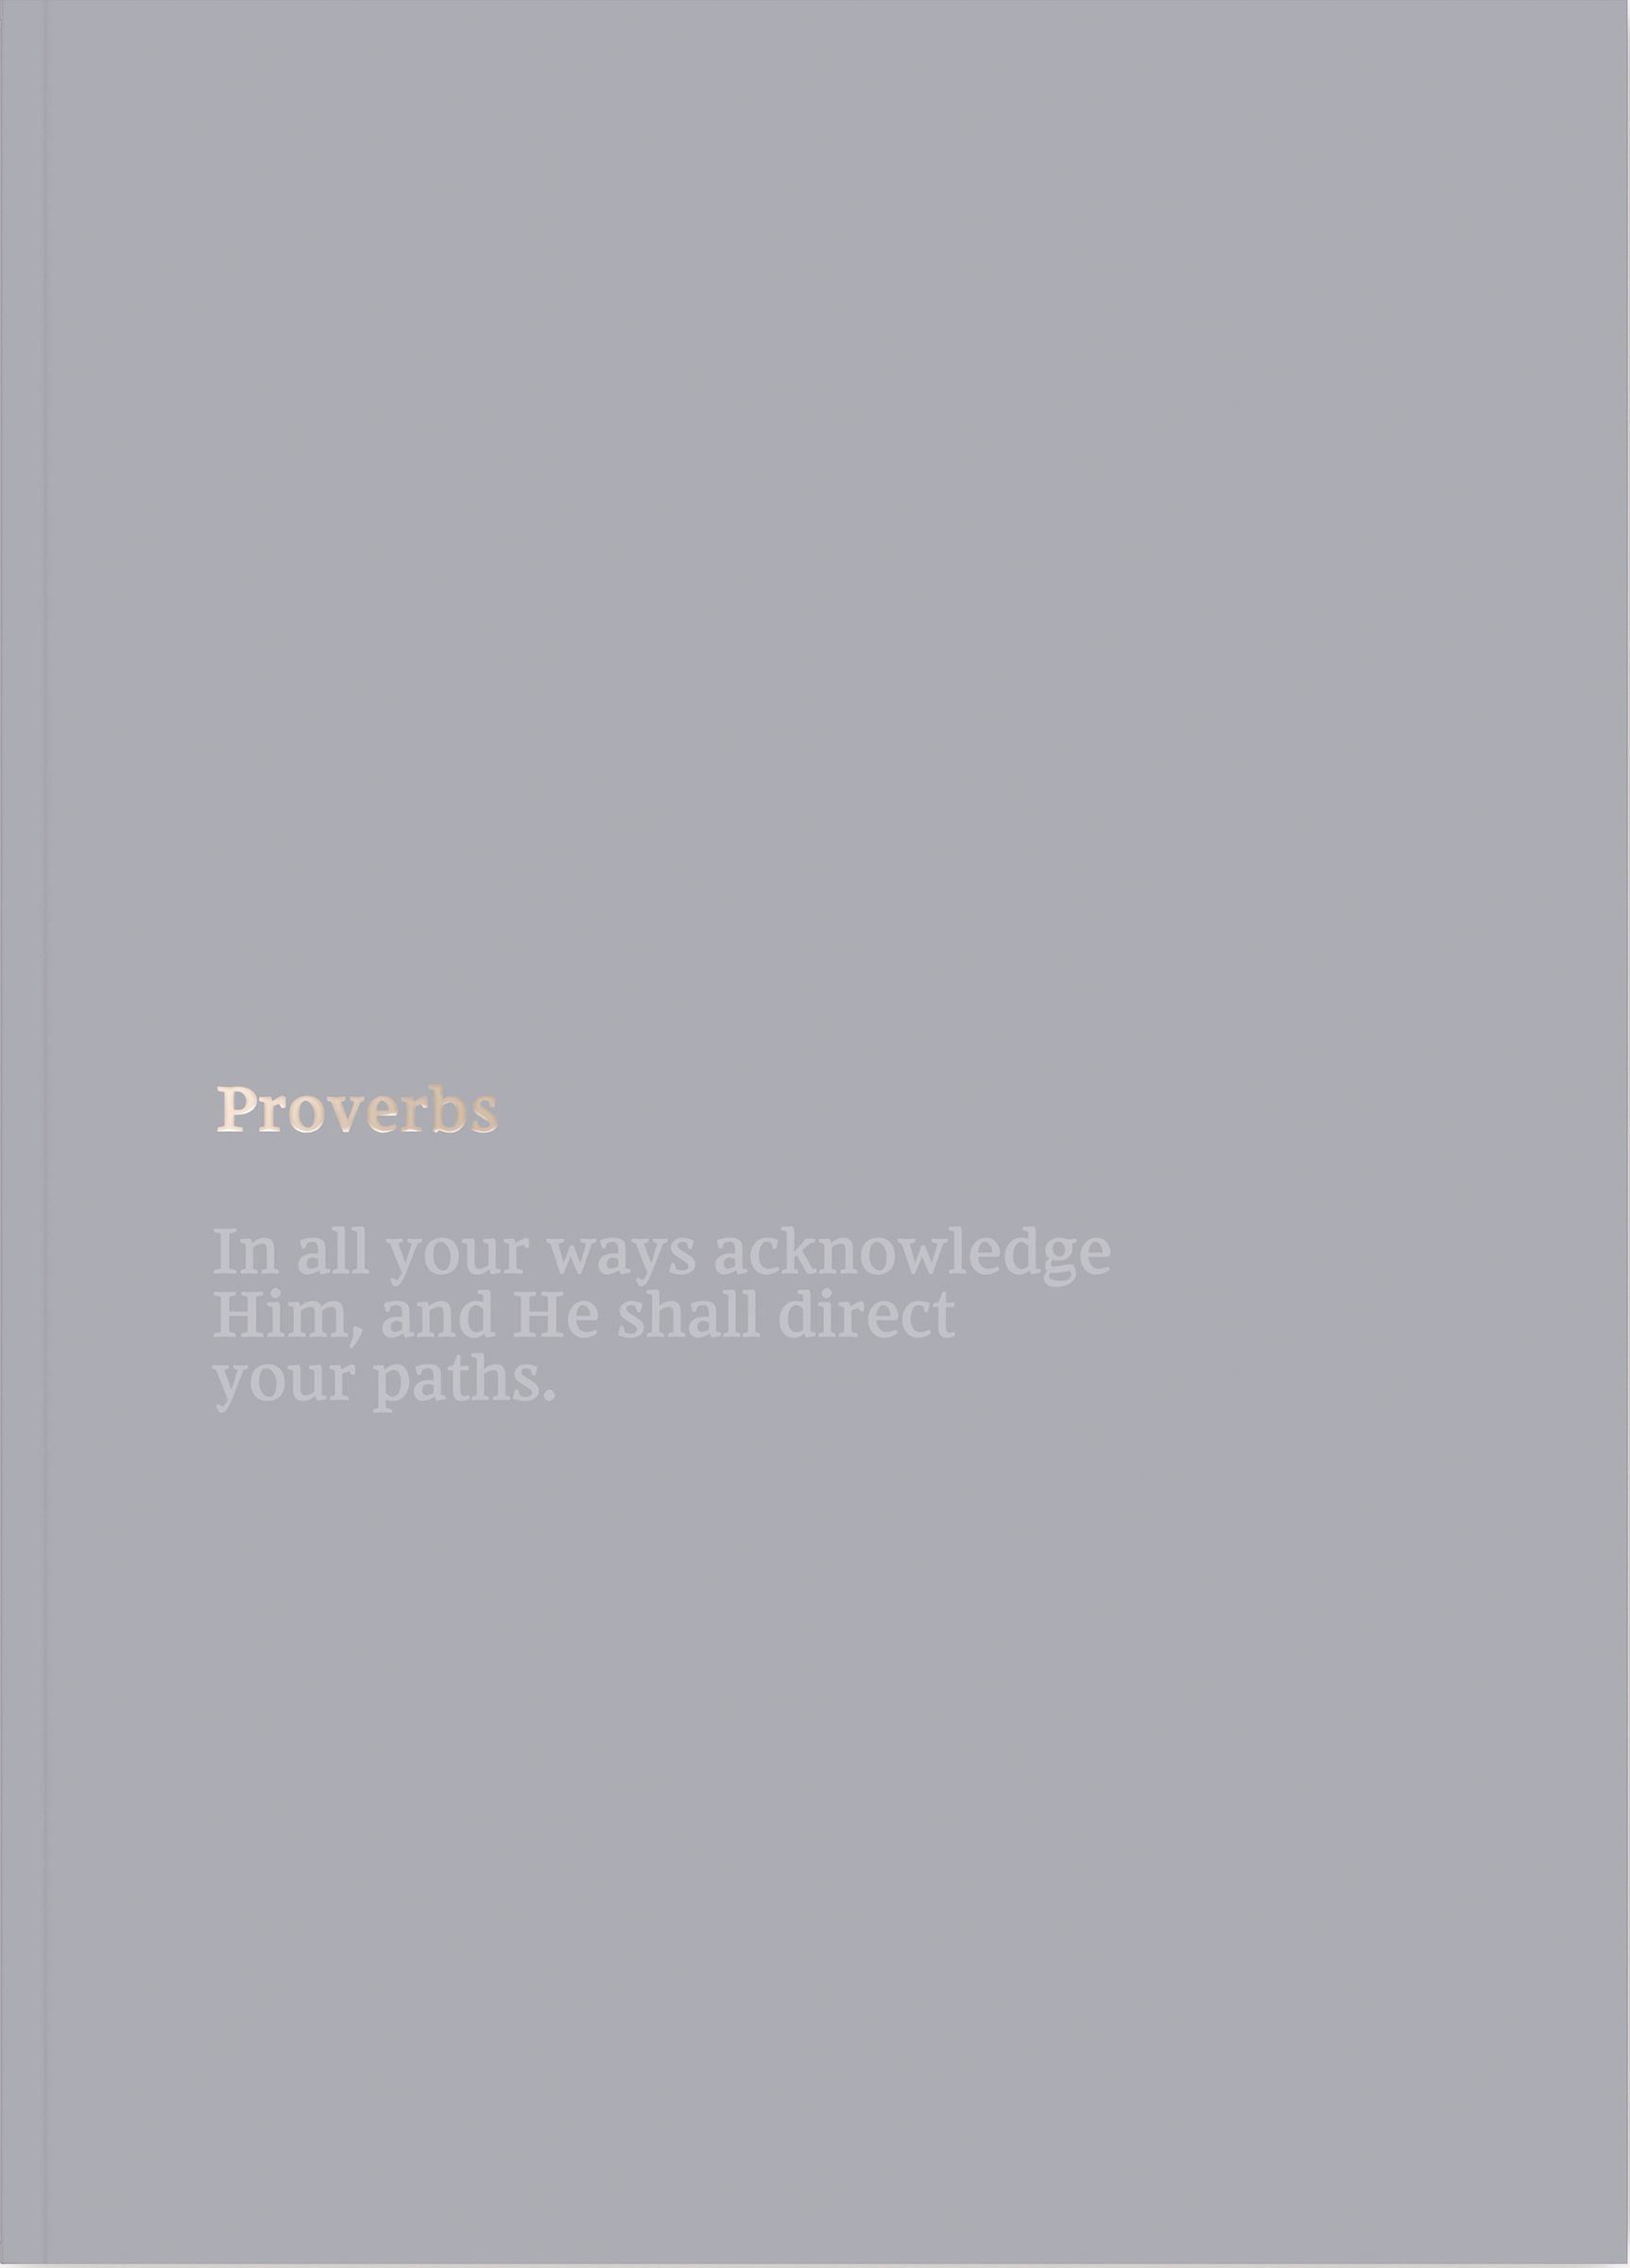 NKJV Bible Journal - Proverbs, Softcover, Comfort Print: Holy Bible, New King James Version